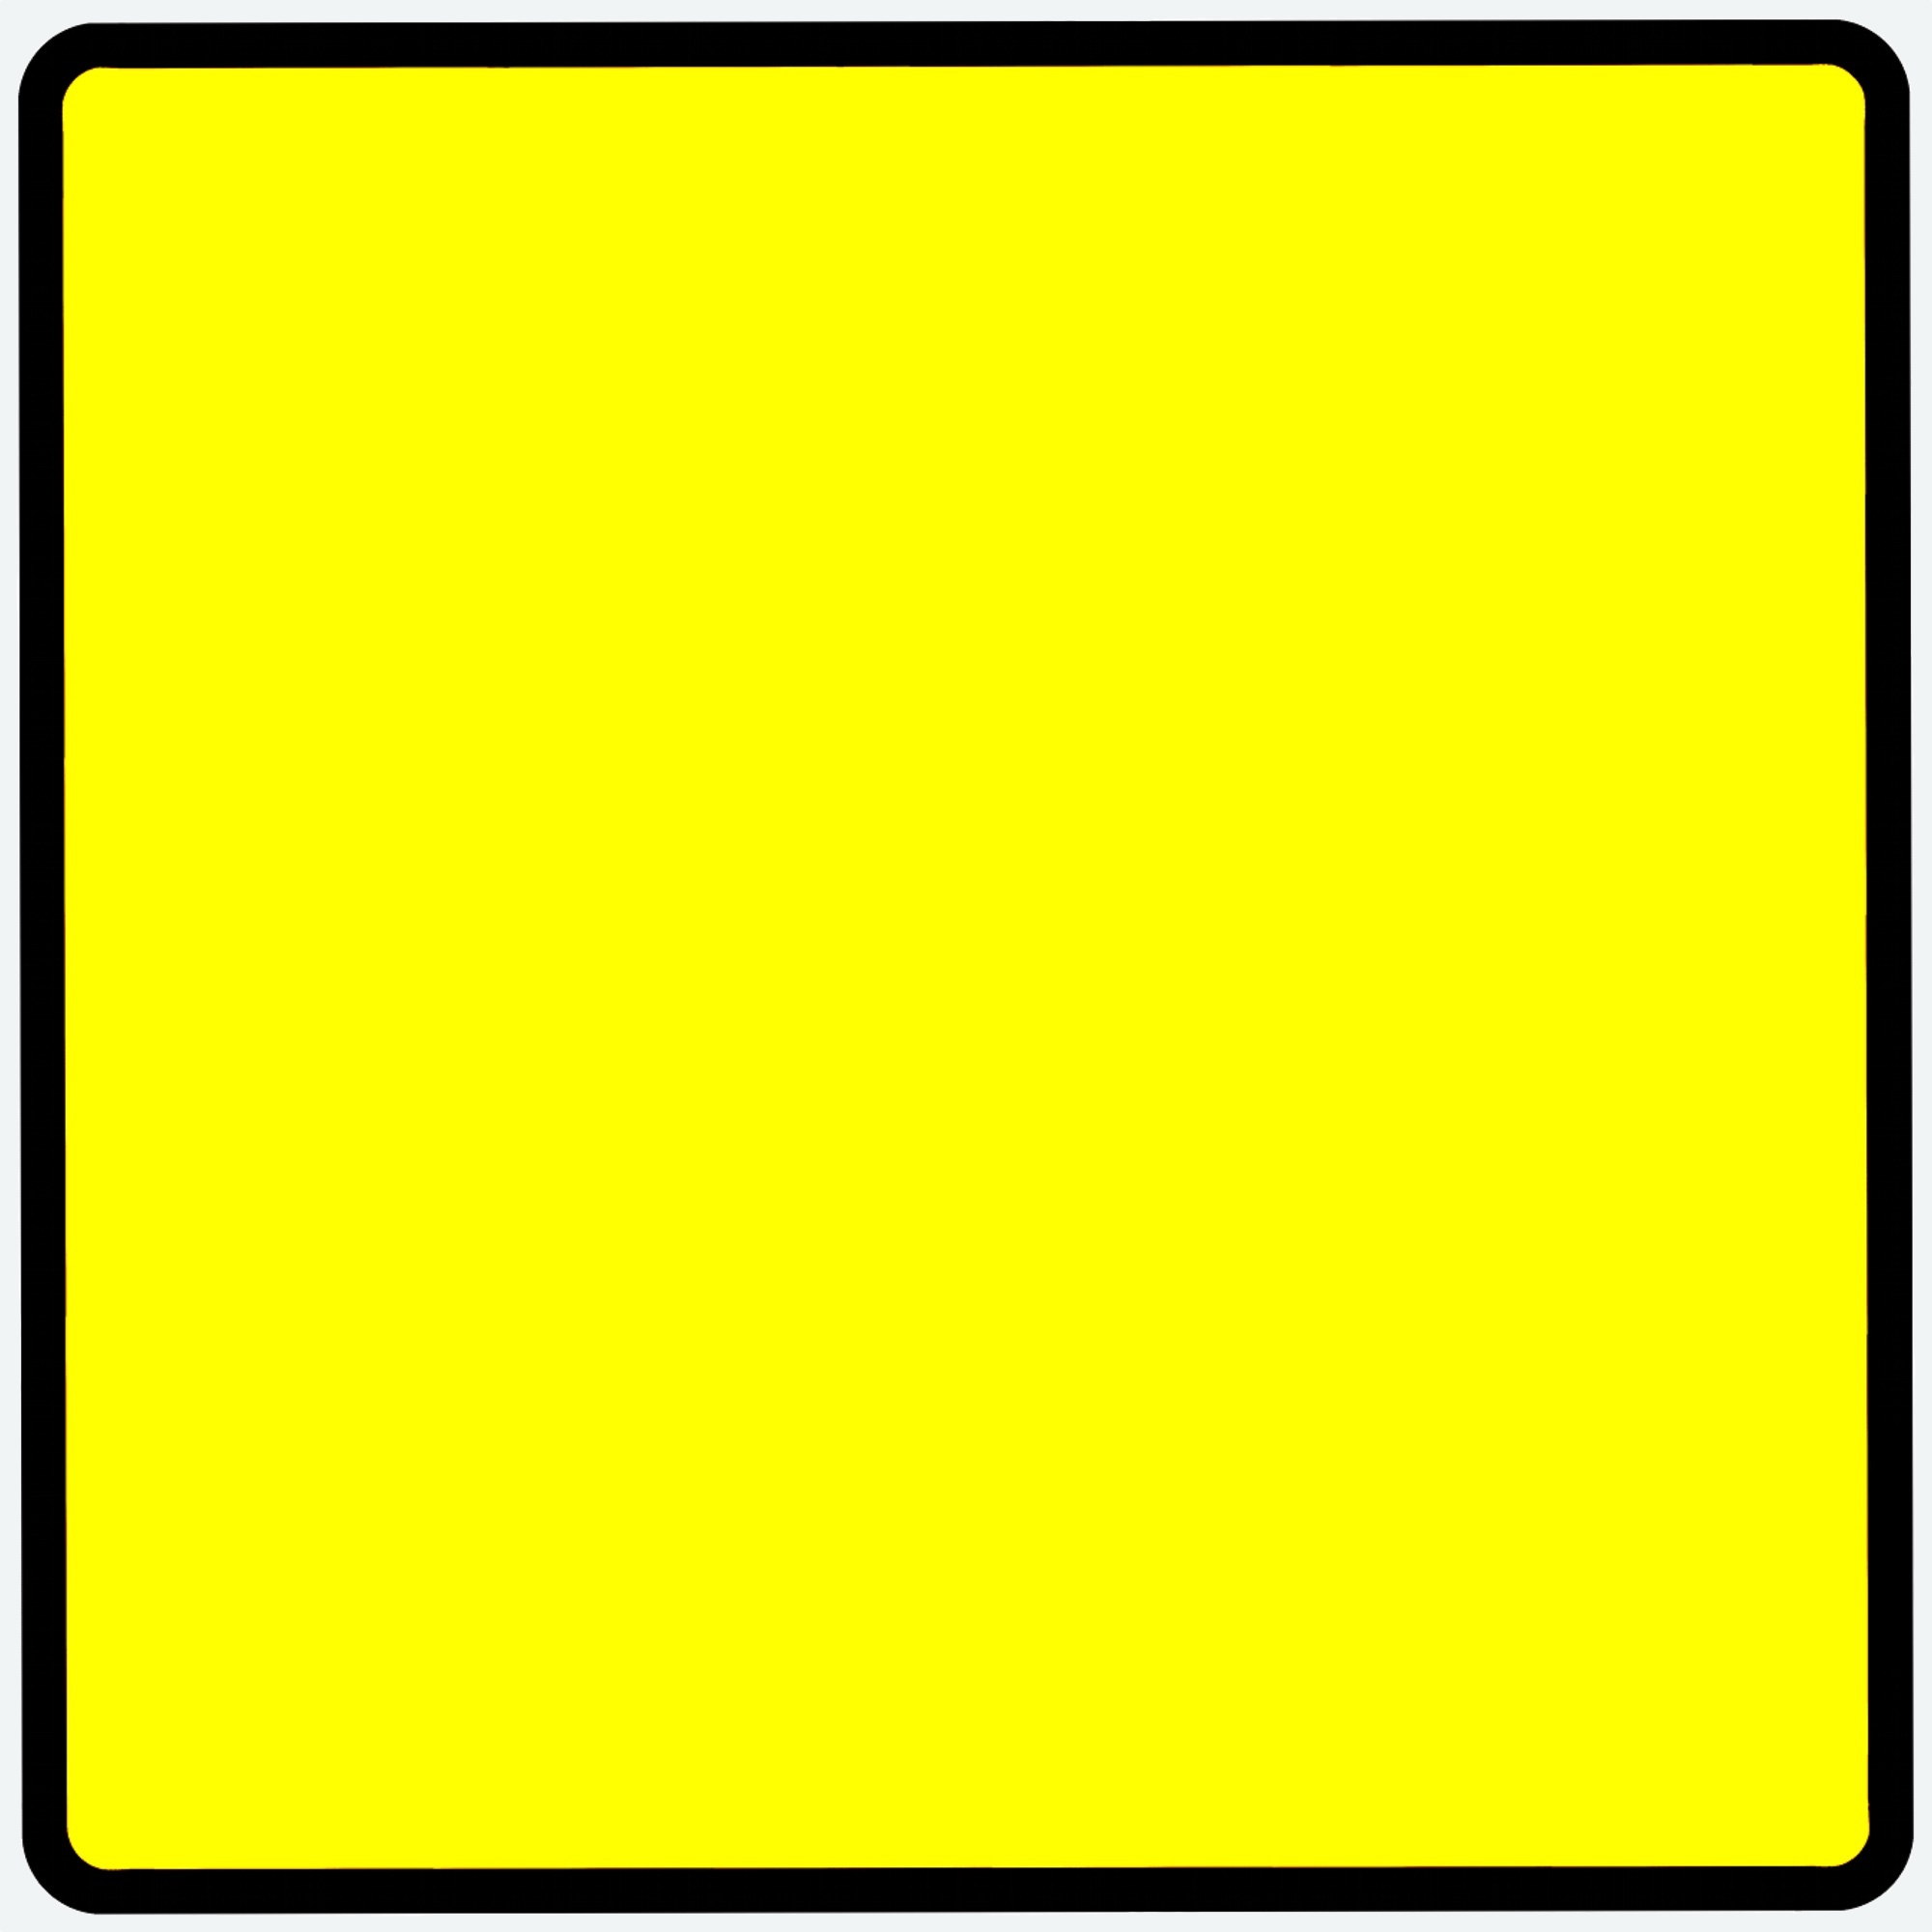 "MK16CC07 Square Yellow <a href=""https://dl.orangedox.com/mi3XDS"">[DOWNLOAD]</a>"